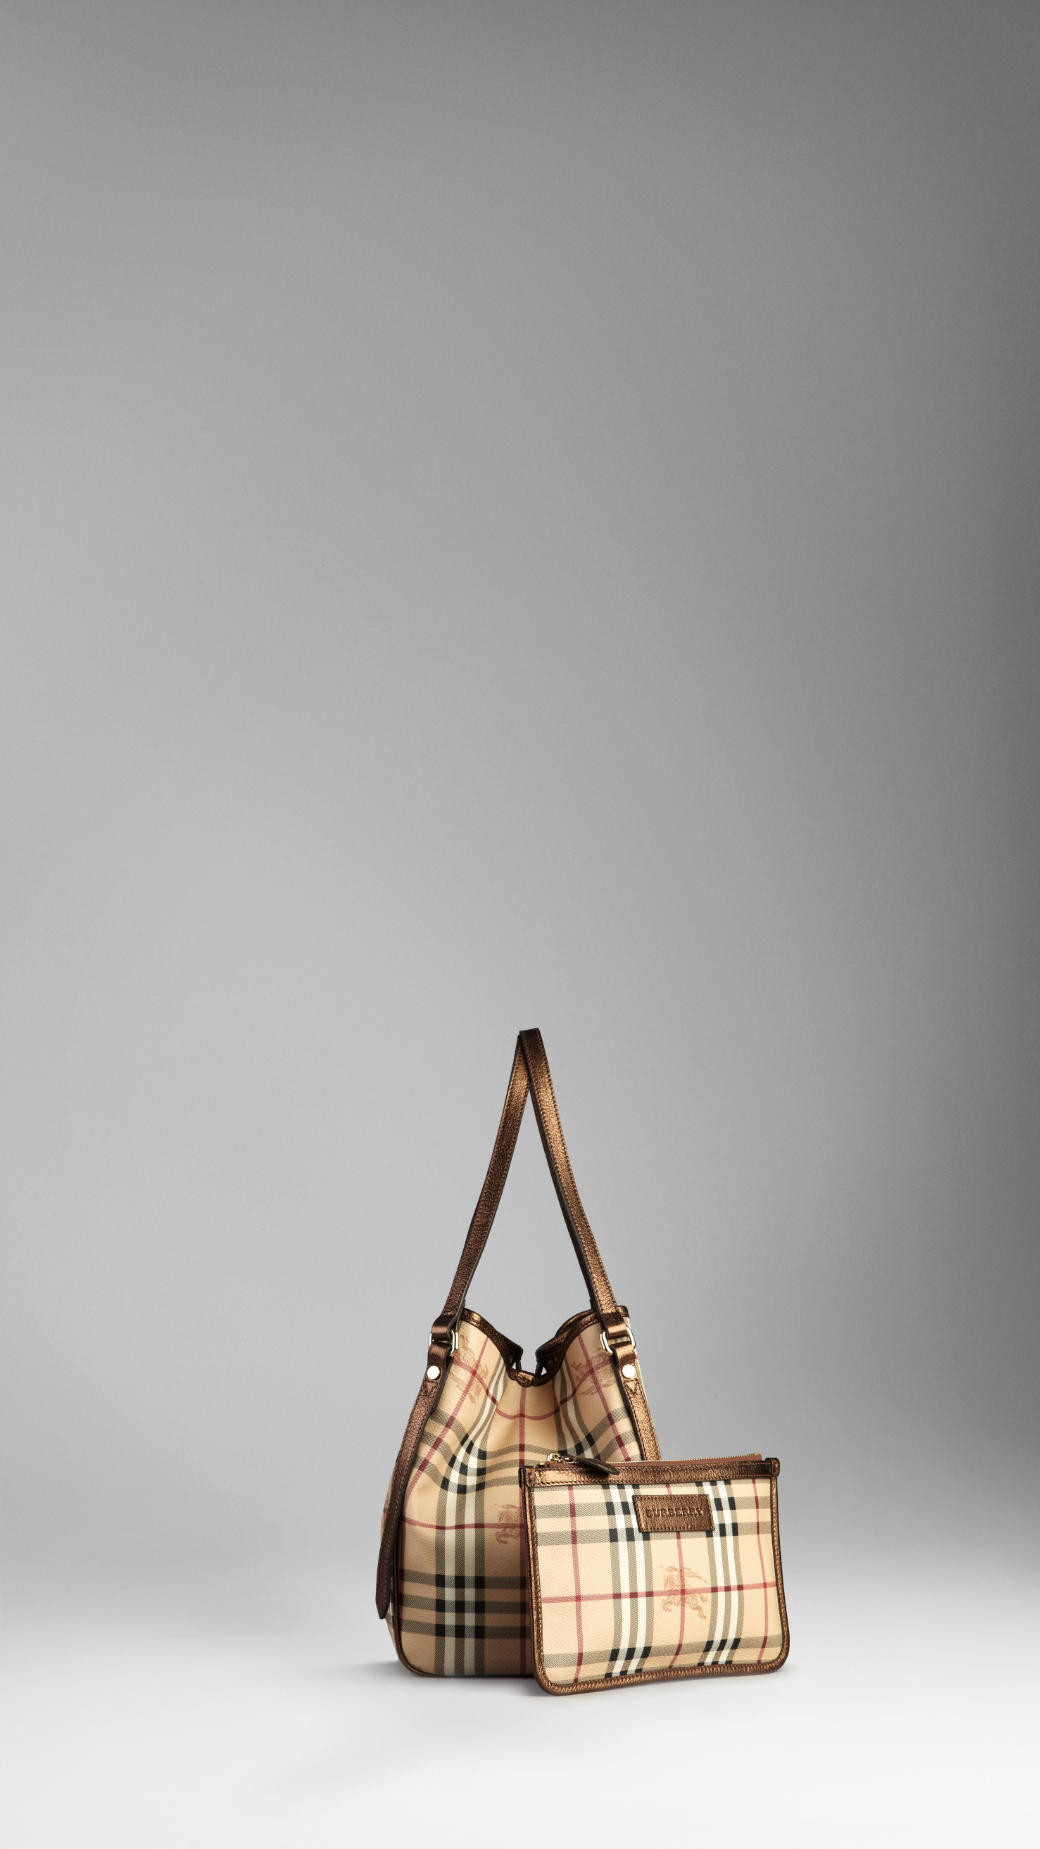 Lyst Burberry Small Haymarket Check Tote Bag In Natural